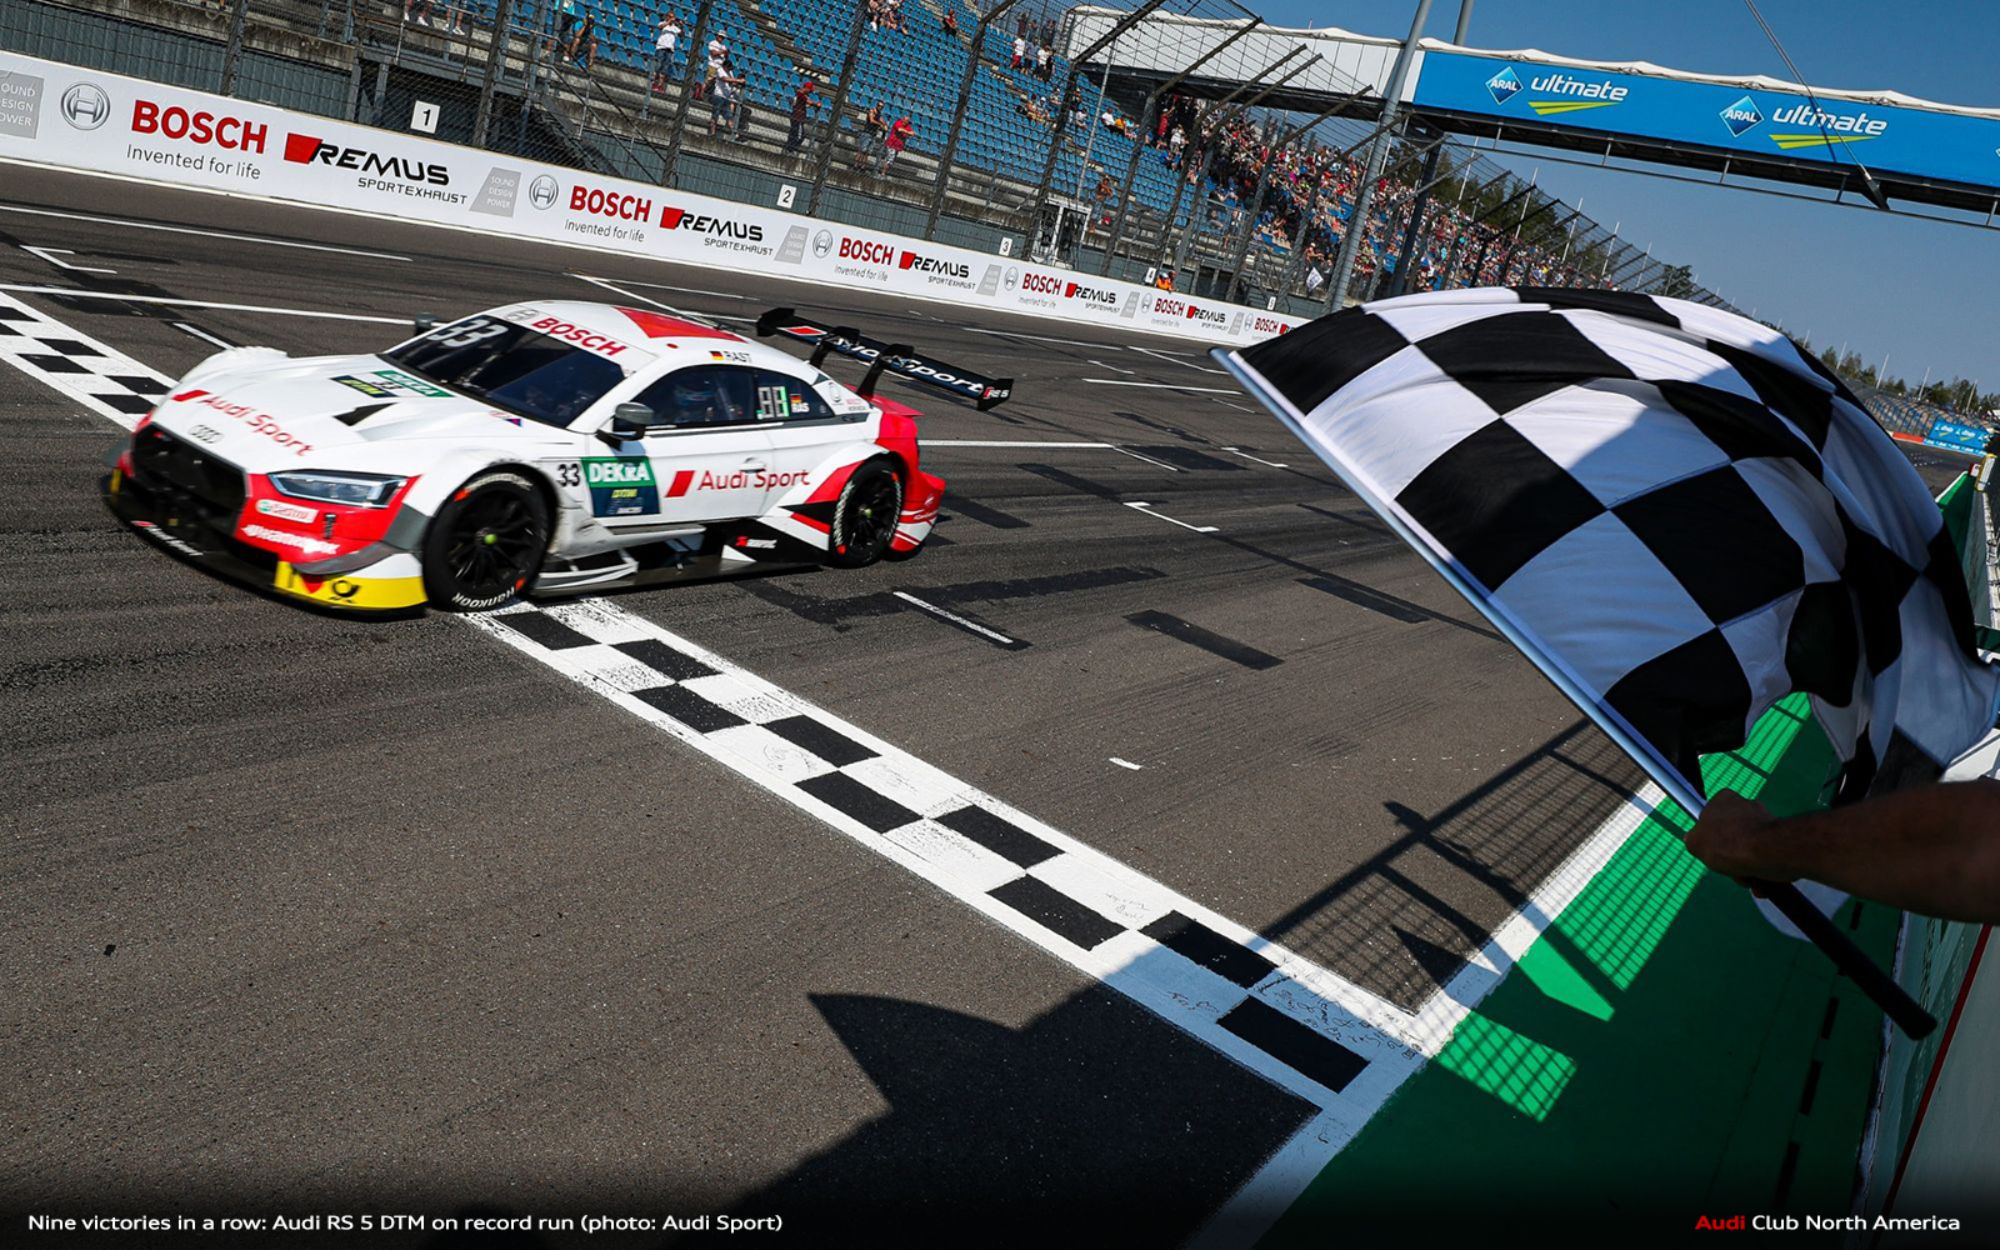 Nine Victories in a Row: Audi RS 5 DTM on Record Run